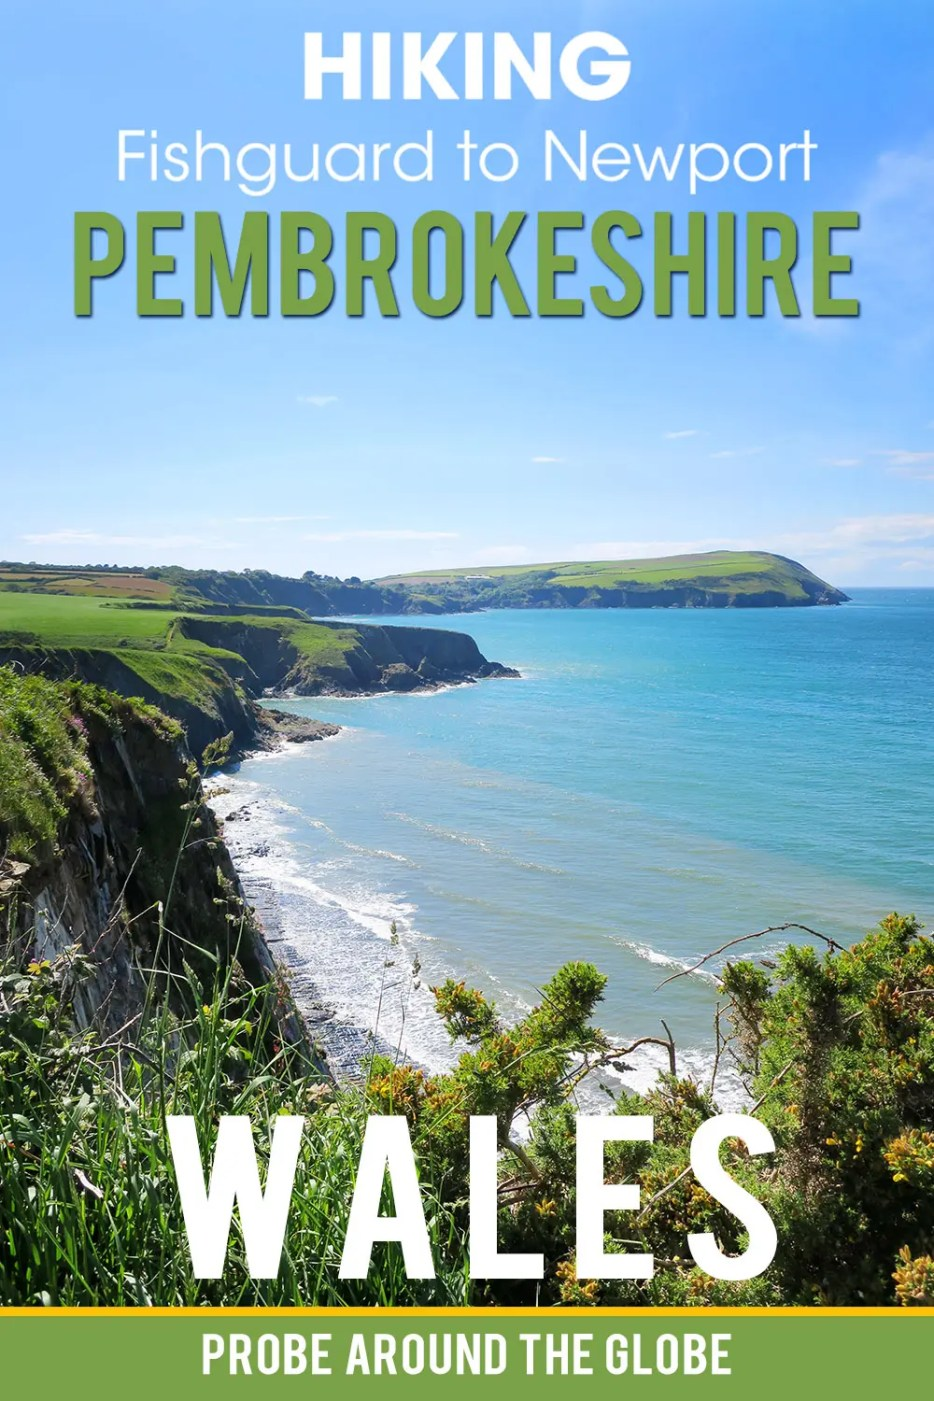 Read about hiking Fishguard to Newport on the Pembrokeshire Coast Path. Read my practical tips for walking this part of the Wales Coast Path